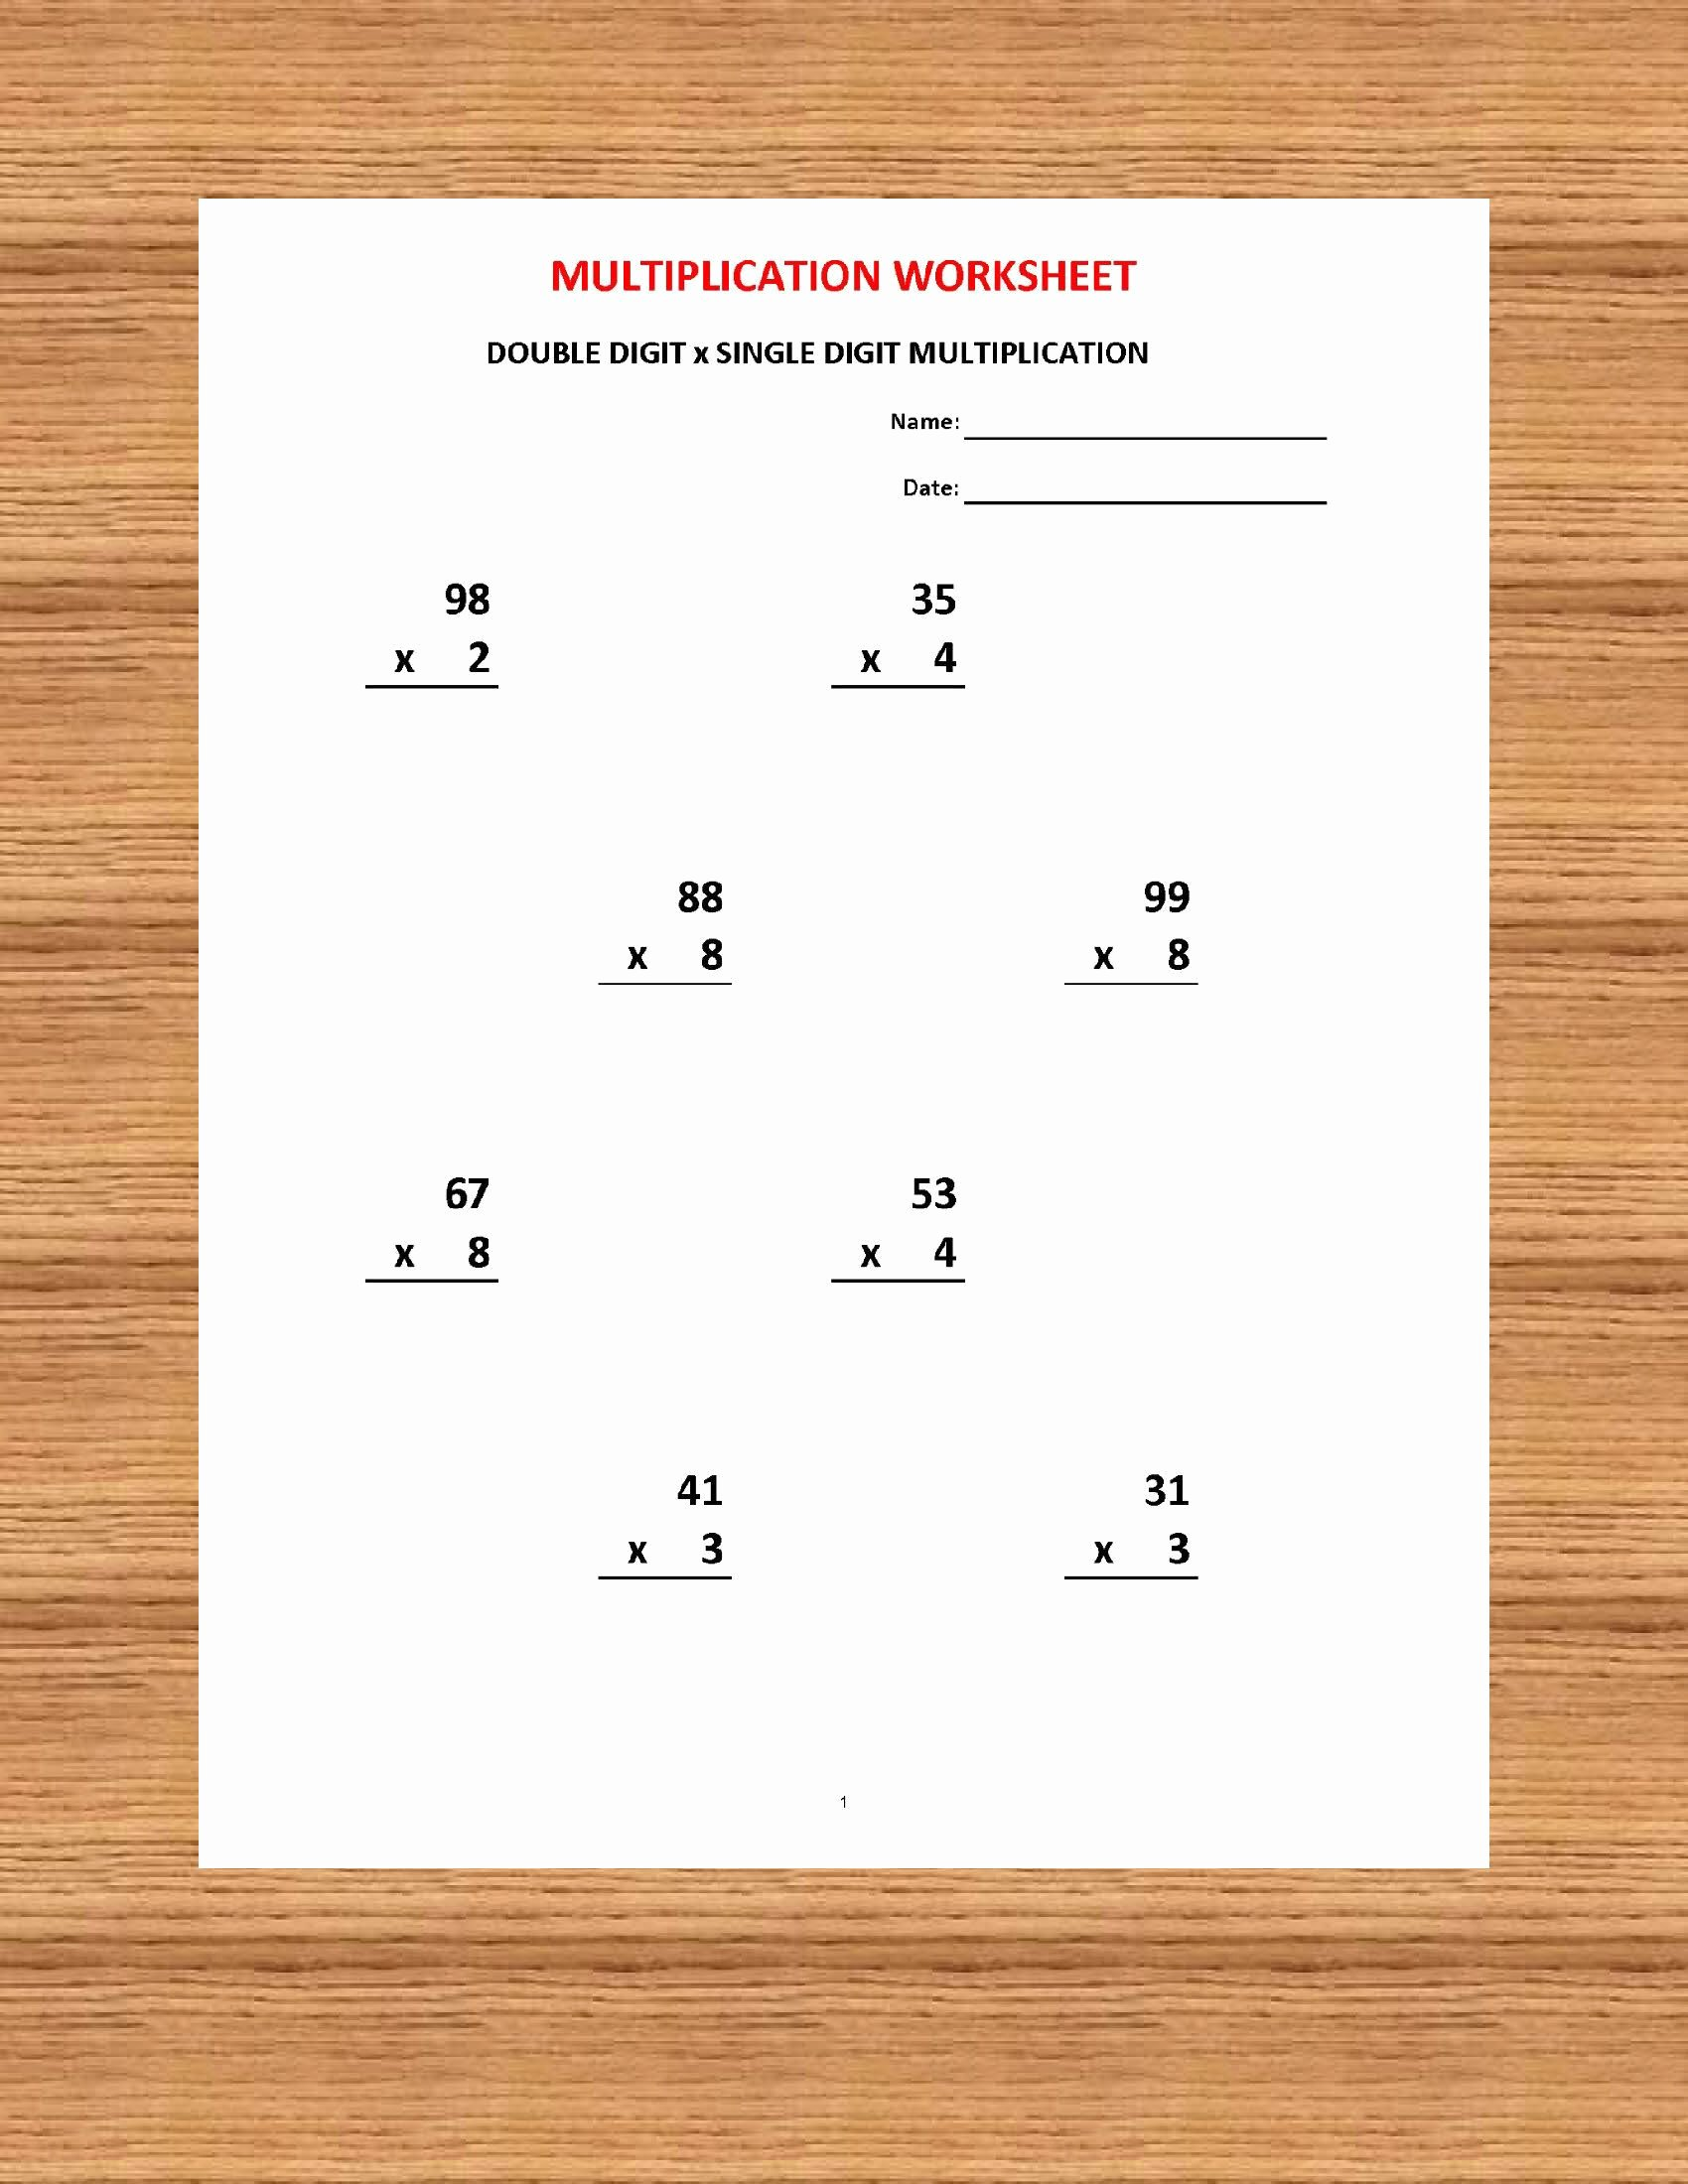 Multiplication Worksheets for Grade 1 Inspirational Addition 1 Minute Drill H 10 Math Worksheets with Answers